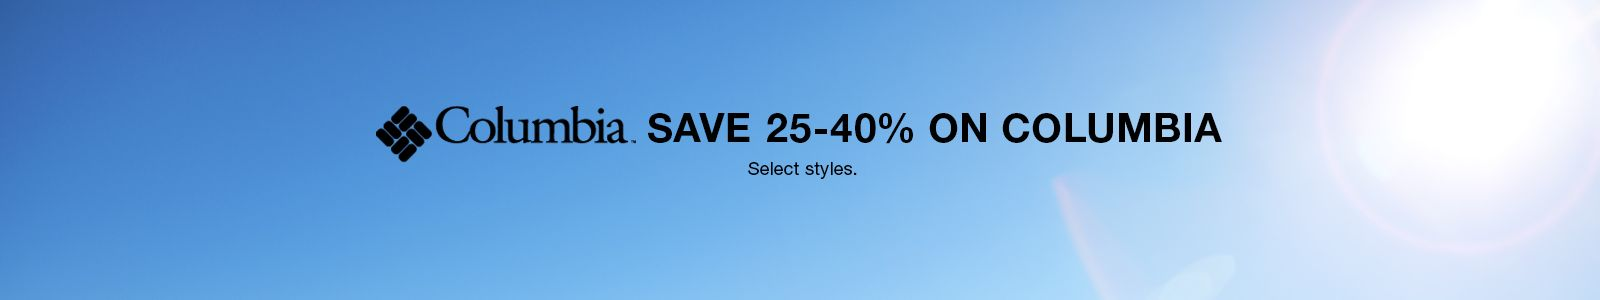 Columbia, Save 25-40 percent on Columbia, Select styles